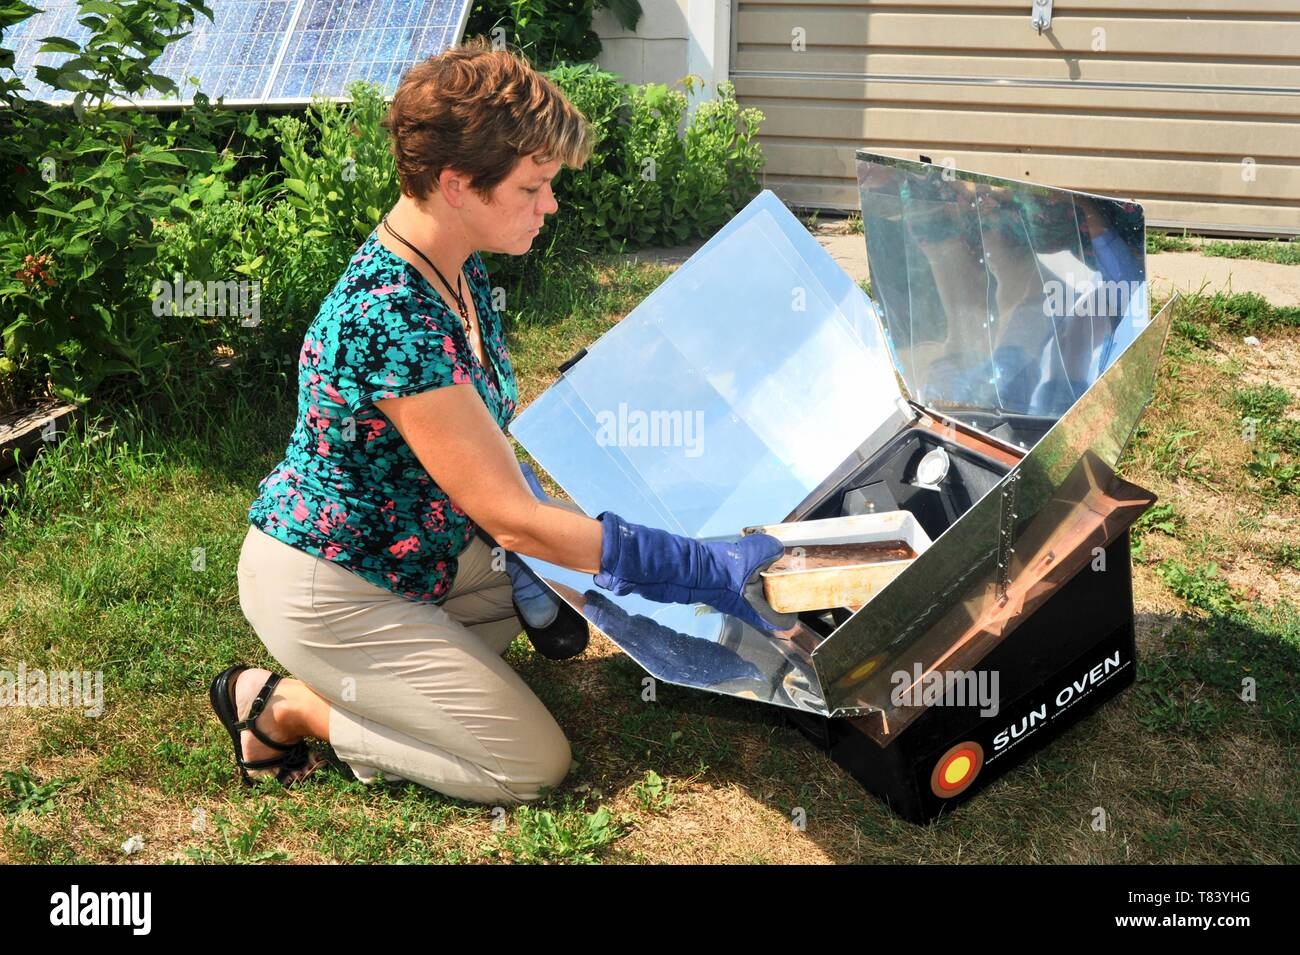 Woman baking fresh bread with farm-raised ingredients in a Sun Oven, cooking food with the heat from the sunlight, in Wisconsin, USA Stock Photo